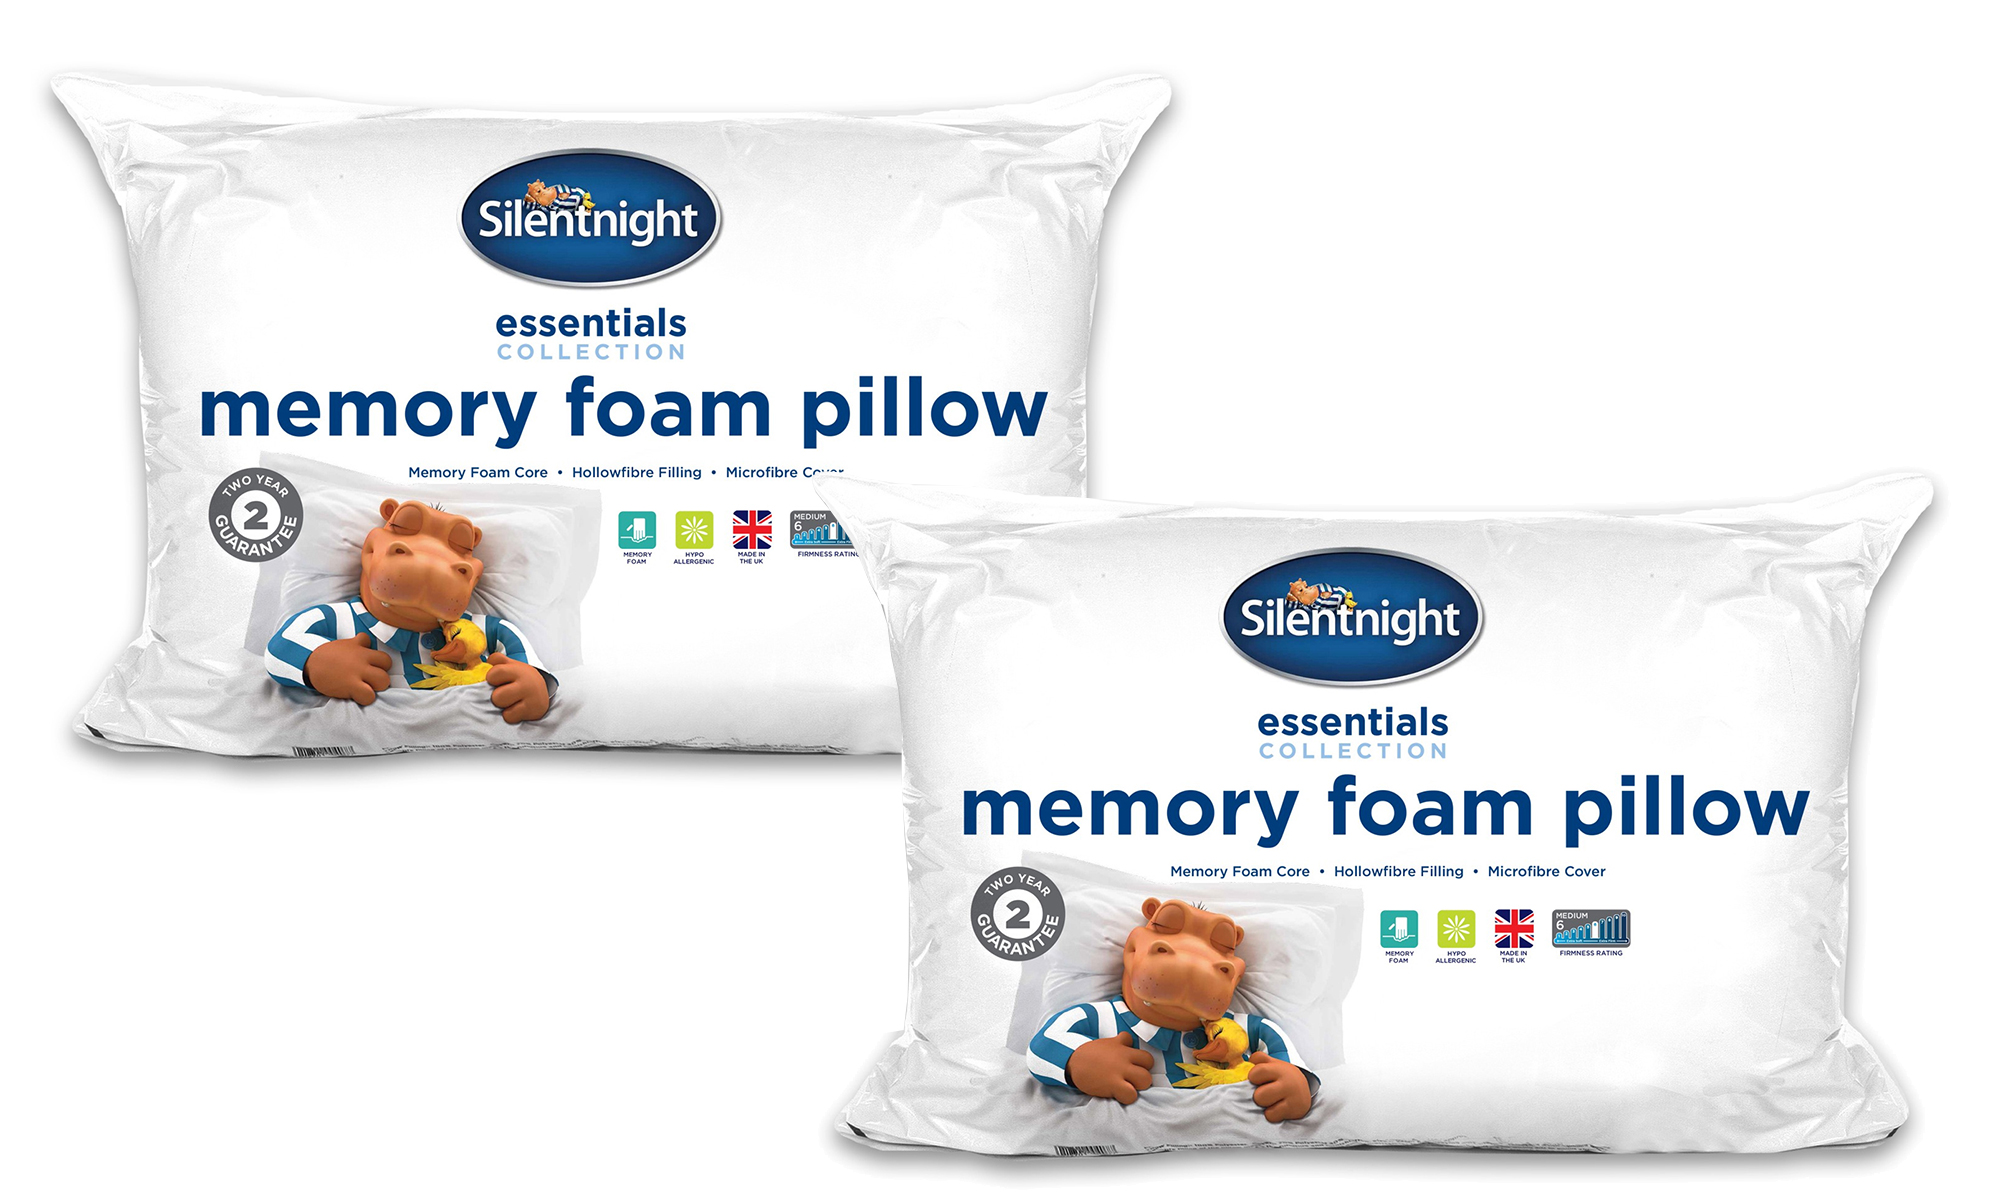 Silent Night Traditional Memory Foam Pillows : One, Two or Four Silentnight Essential Memory Foam Pillows from ?8.99 Home & Garden Furniture ...